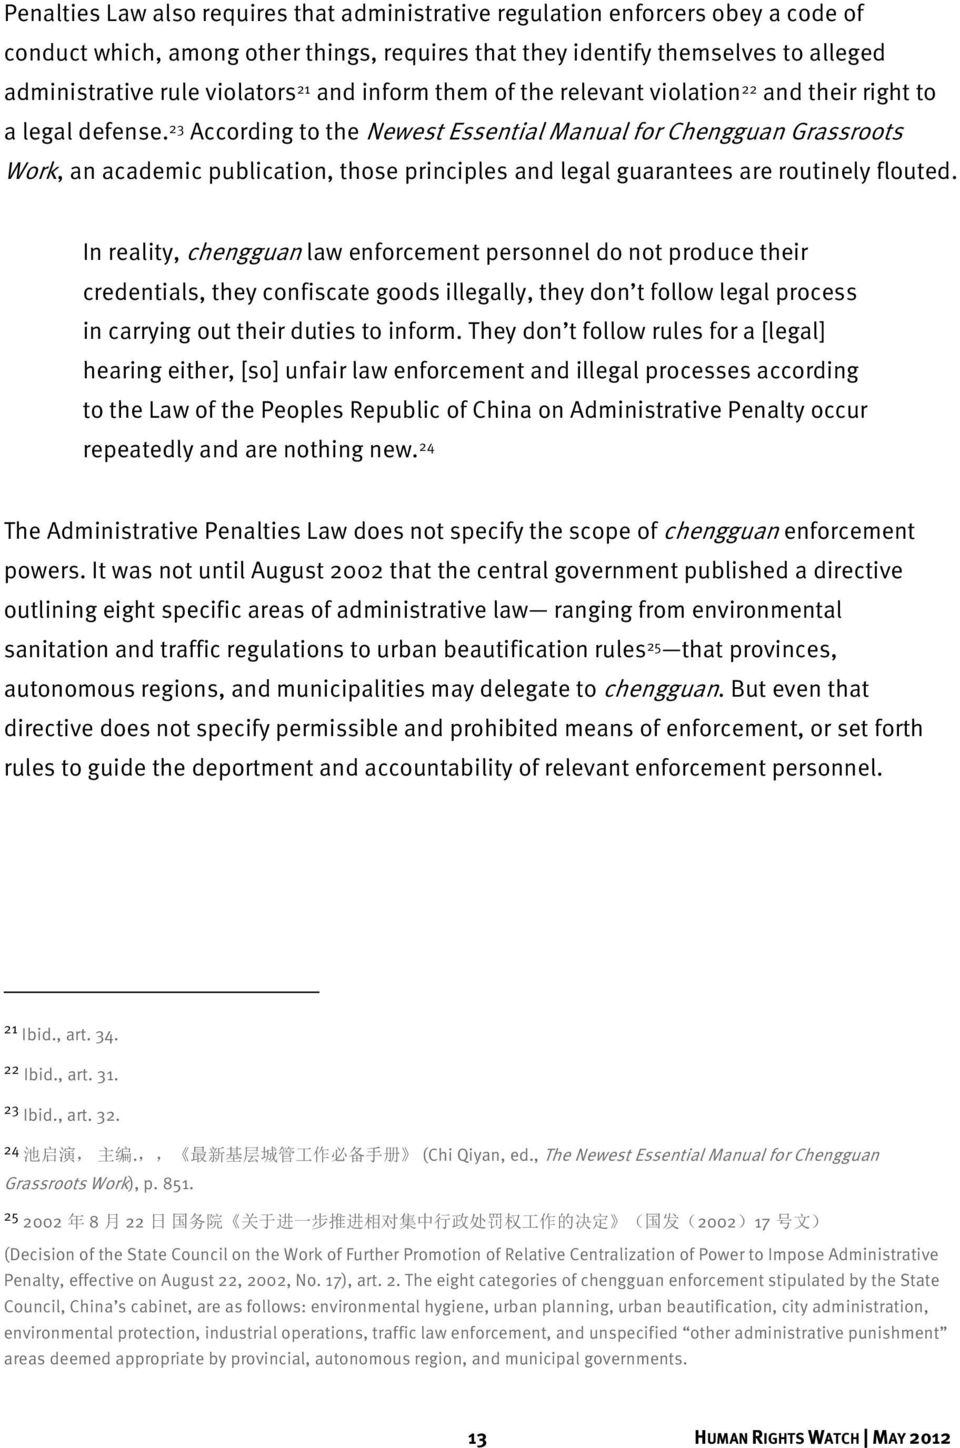 23 According to the Newest Essential Manual for Chengguan Grassroots Work, an academic publication, those principles and legal guarantees are routinely flouted.